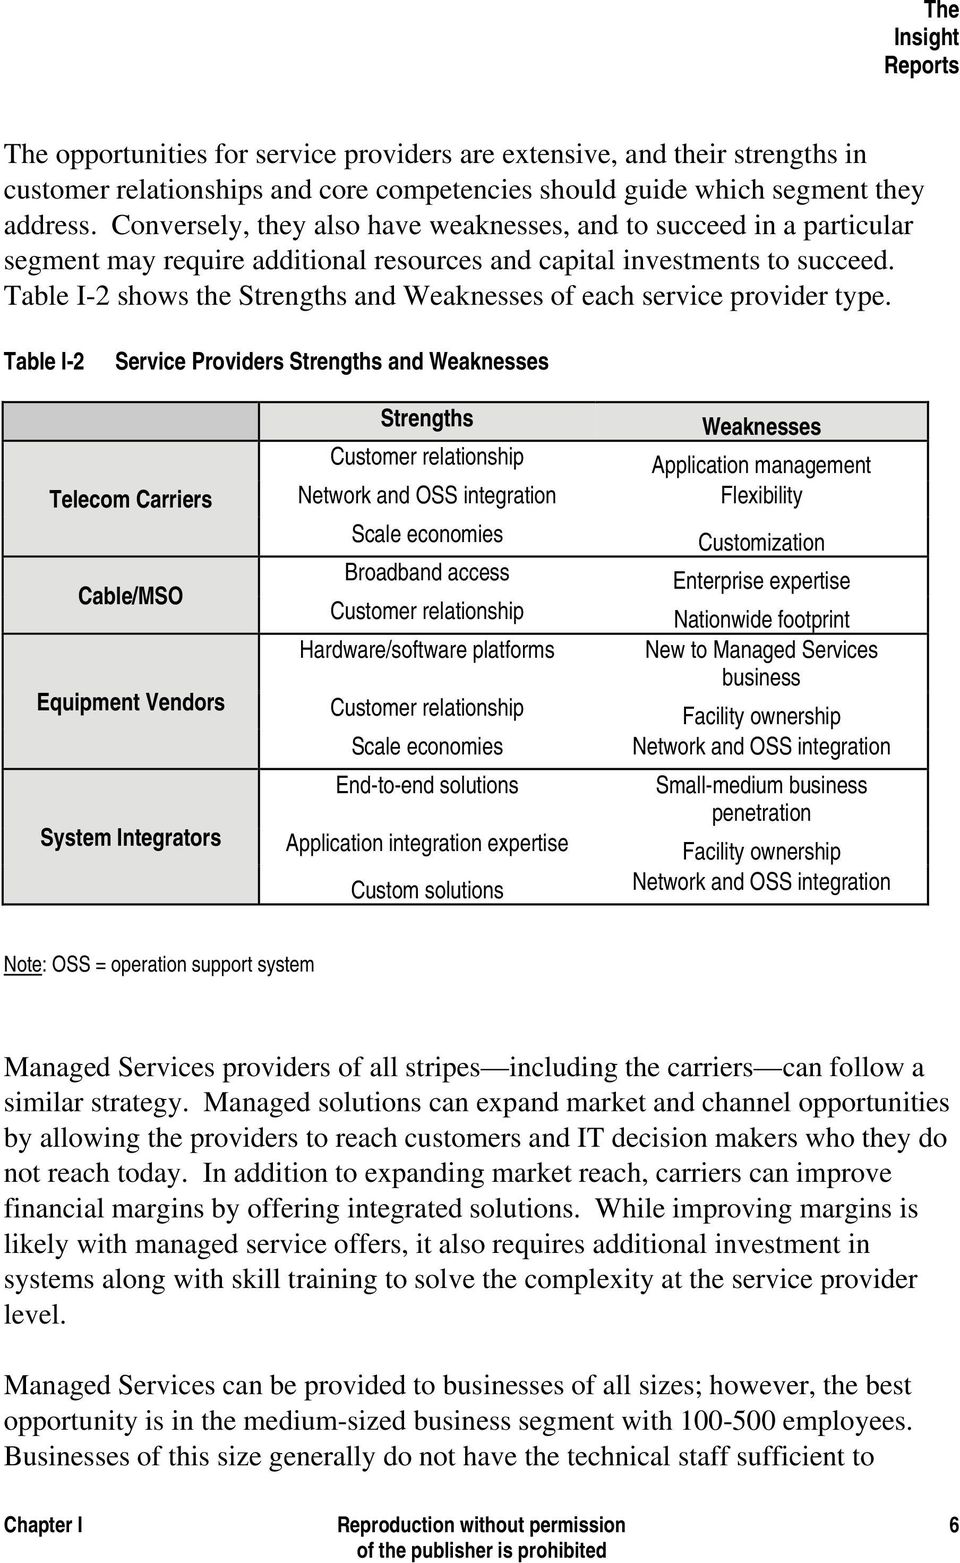 Table I-2 shows the Strengths and Weaknesses of each service provider type.